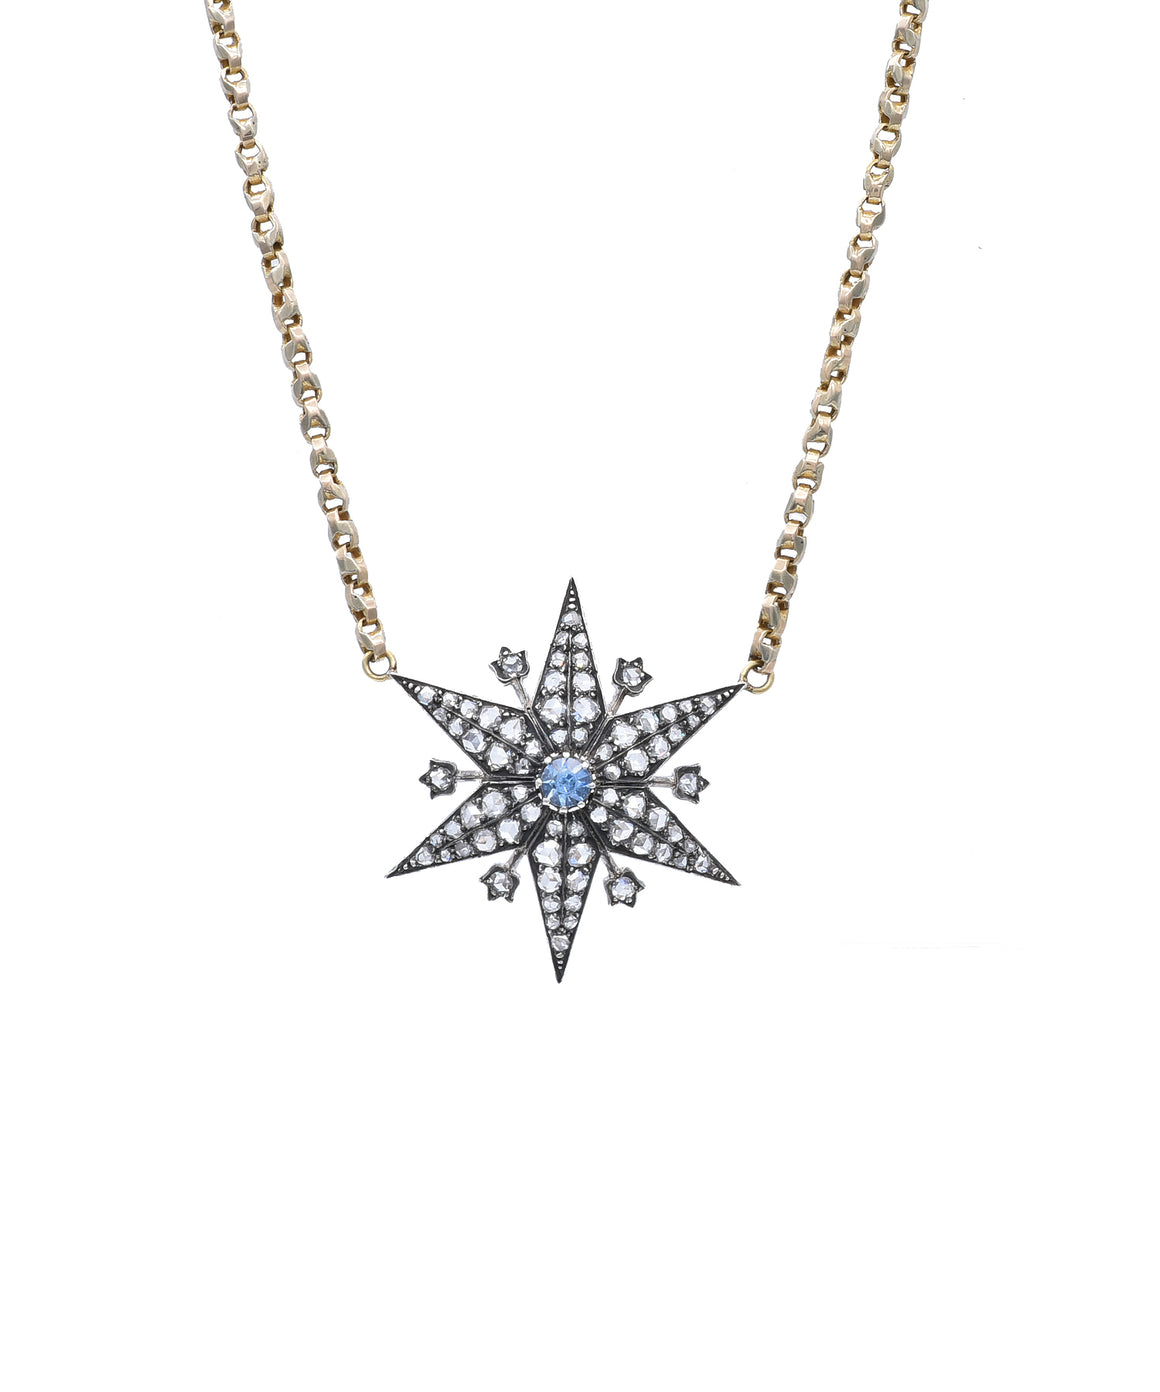 "The subtle sparkle of old-cut grey diamonds adds a sophisticated edge to this vintage starburst . It's centered by a bright blue sapphire. The silver-over-gold star is 1 1*/4"" across and hangs from a vintage 16"" watch chain."